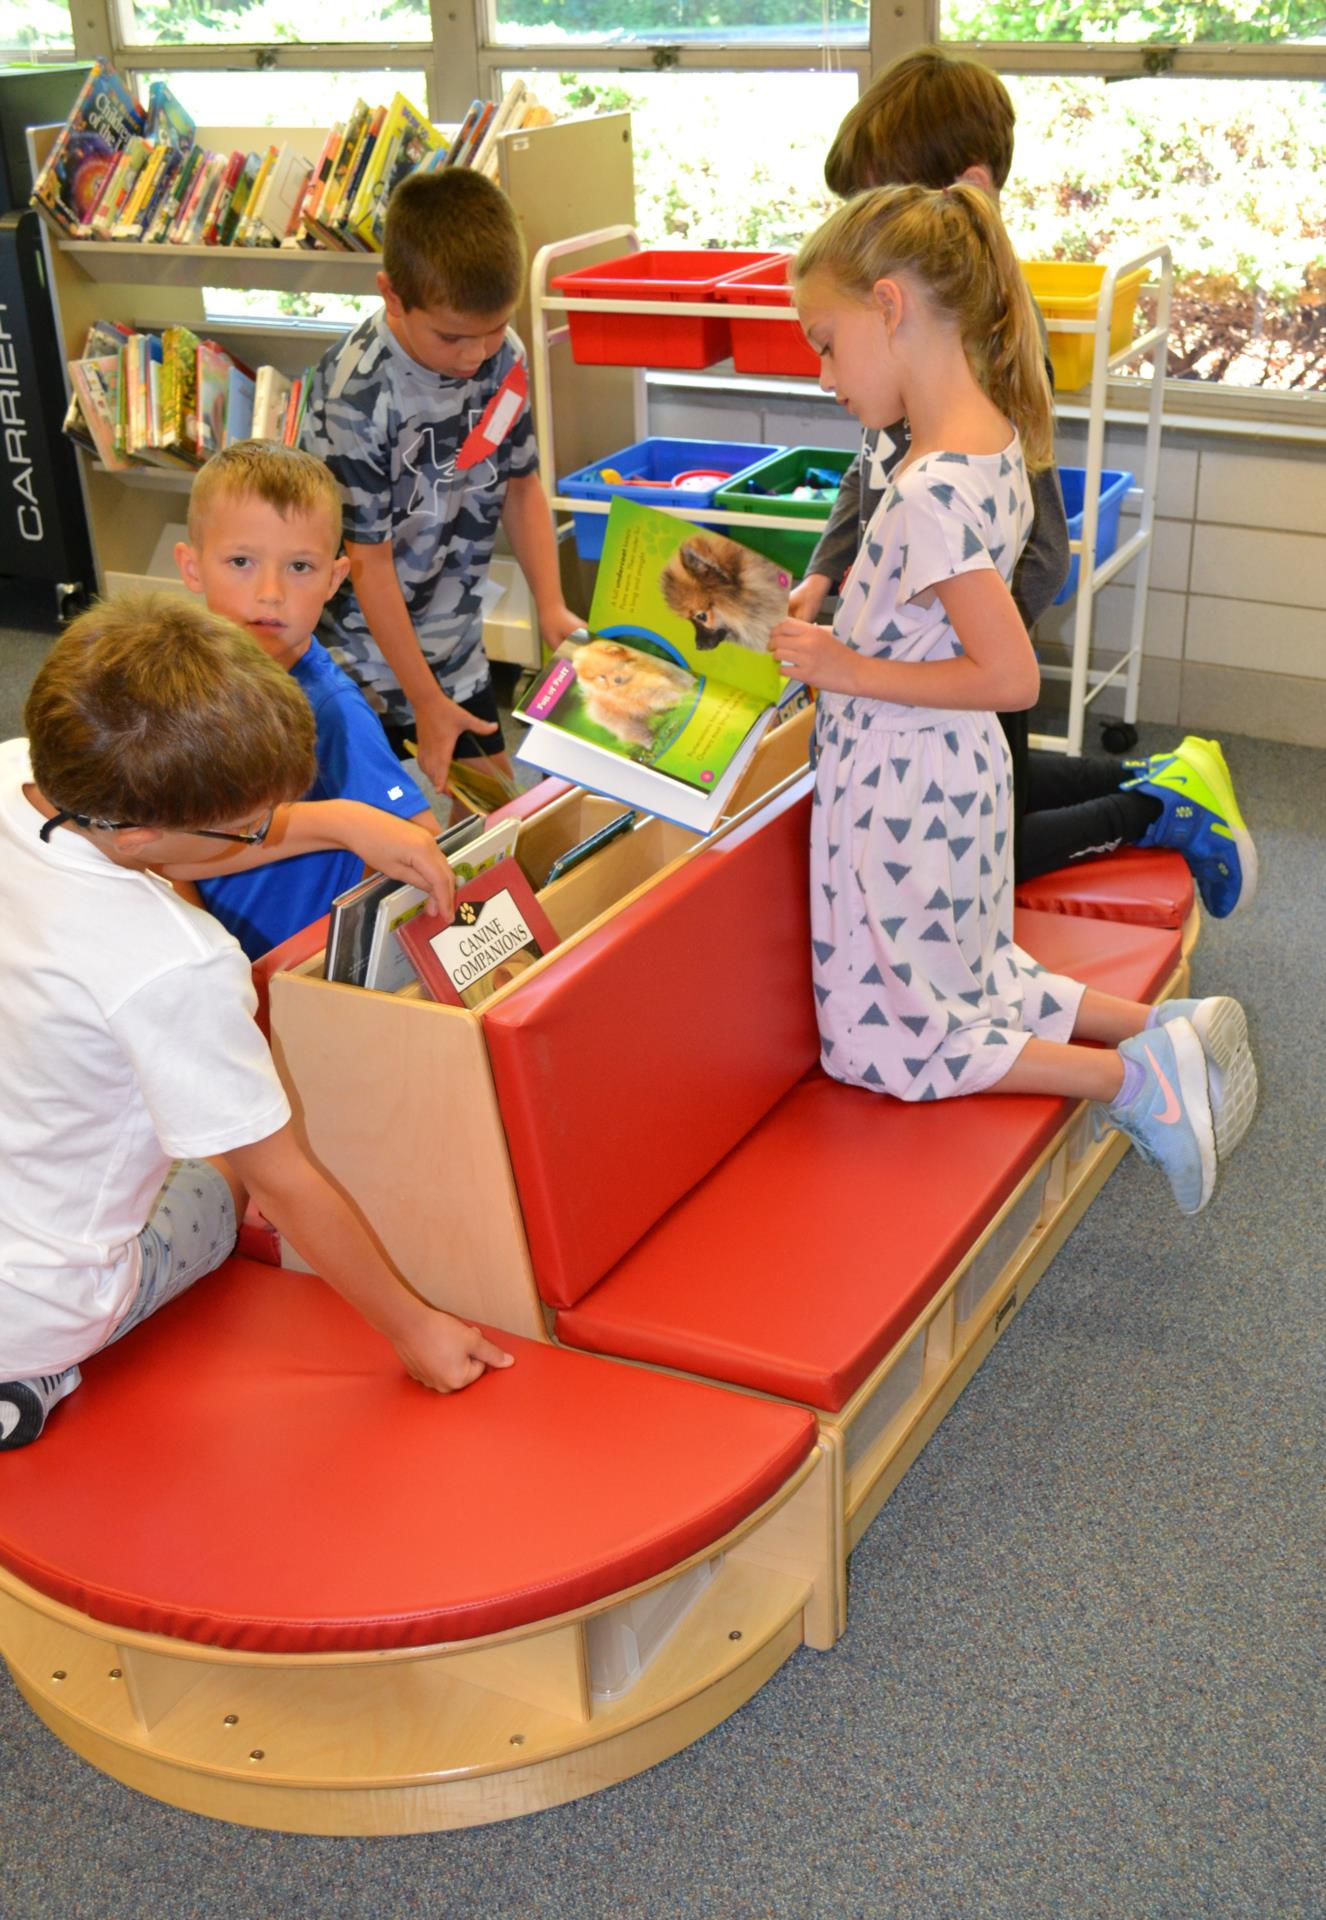 library bench in use